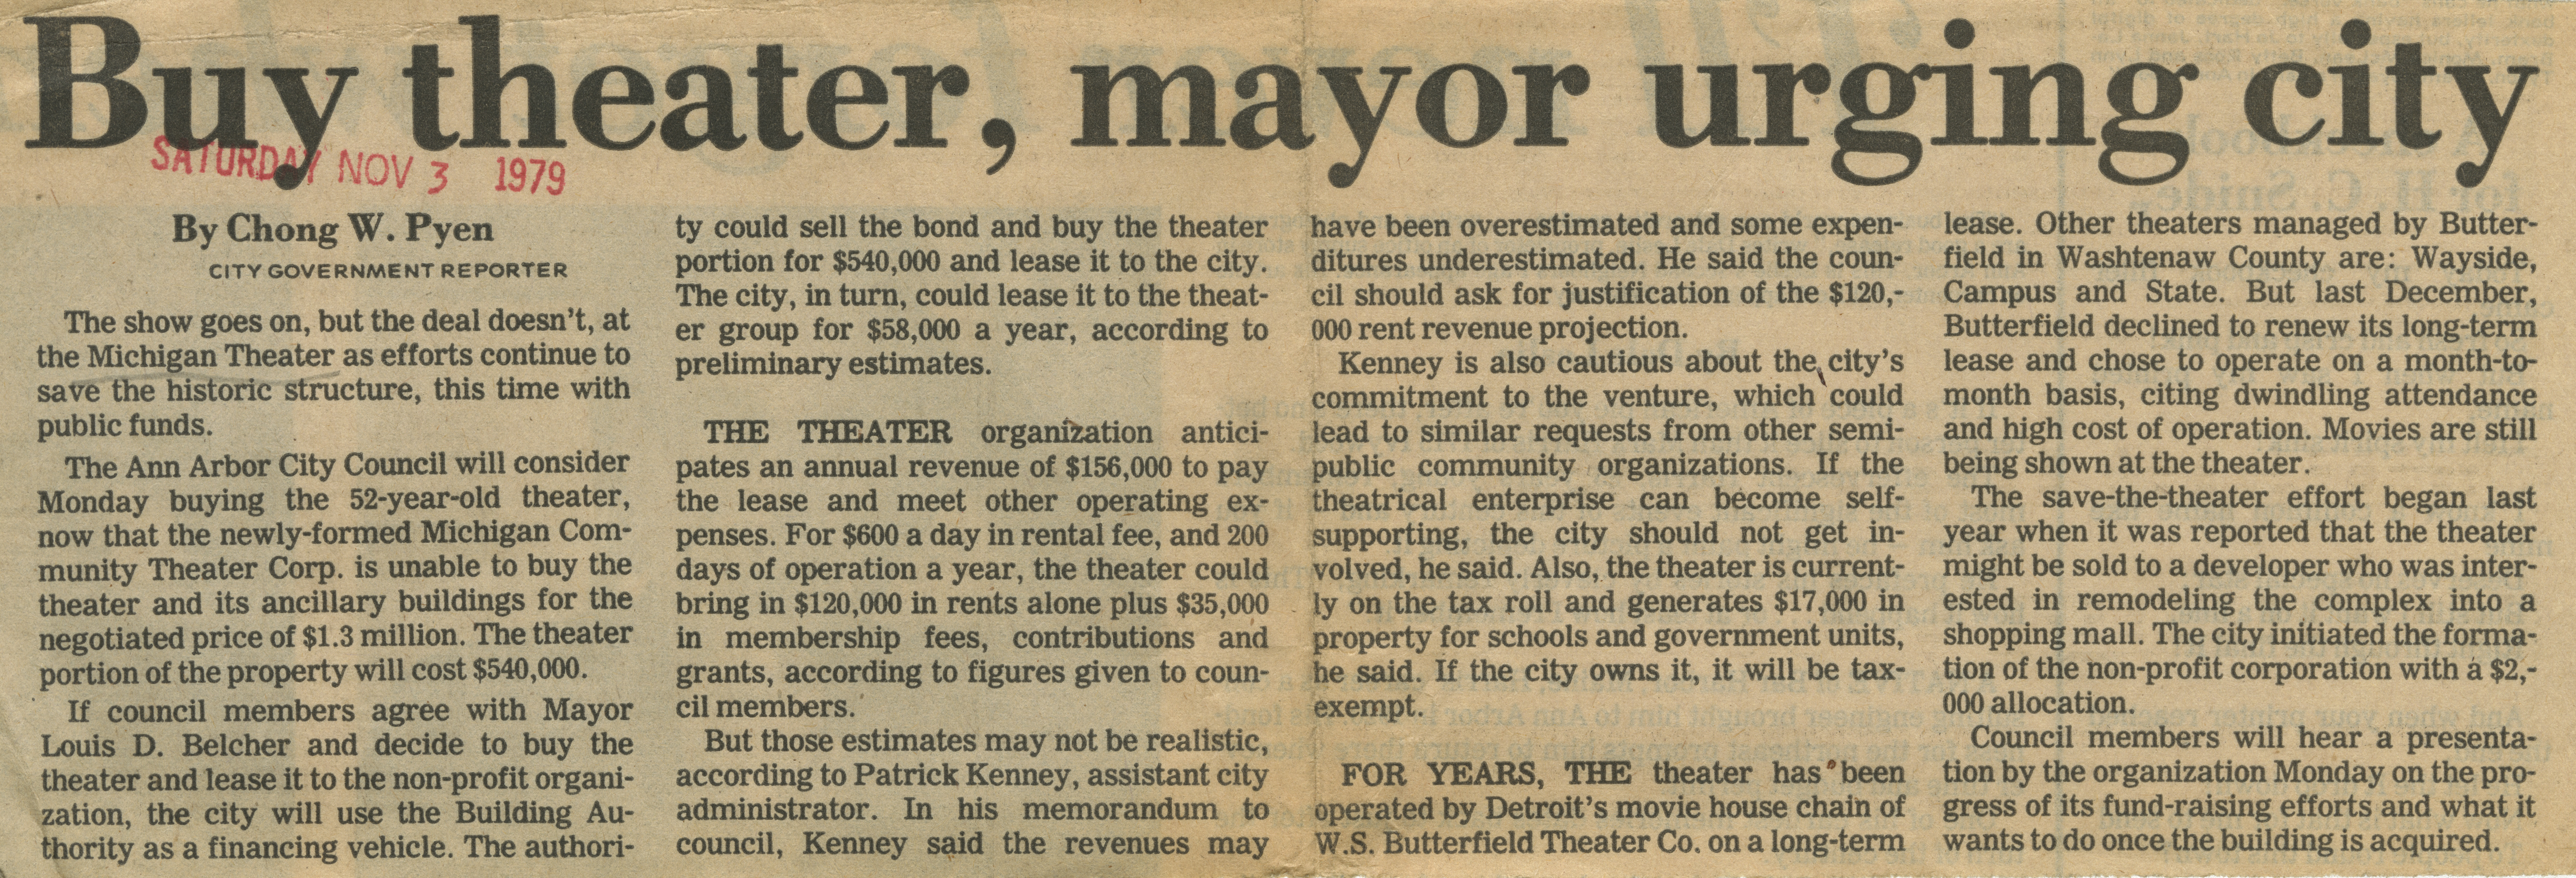 Buy Theater, Mayor Urging City image